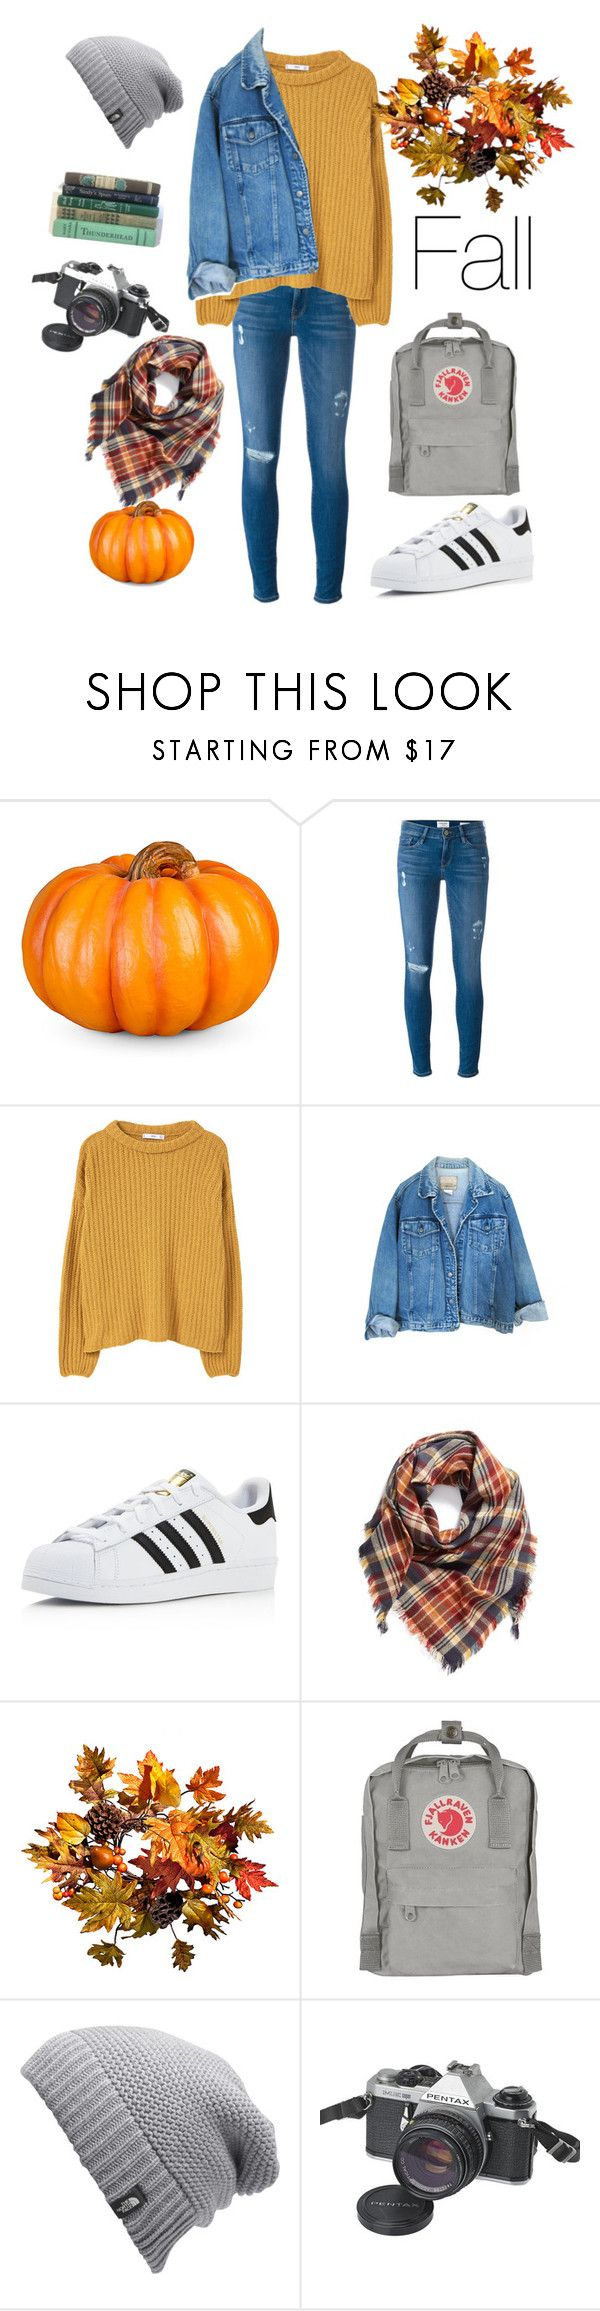 """Fall   #fall"" by magdons on Polyvore featuring Improvements, Frame Denim, MANGO, adidas, BP., The North Face and Pentax"